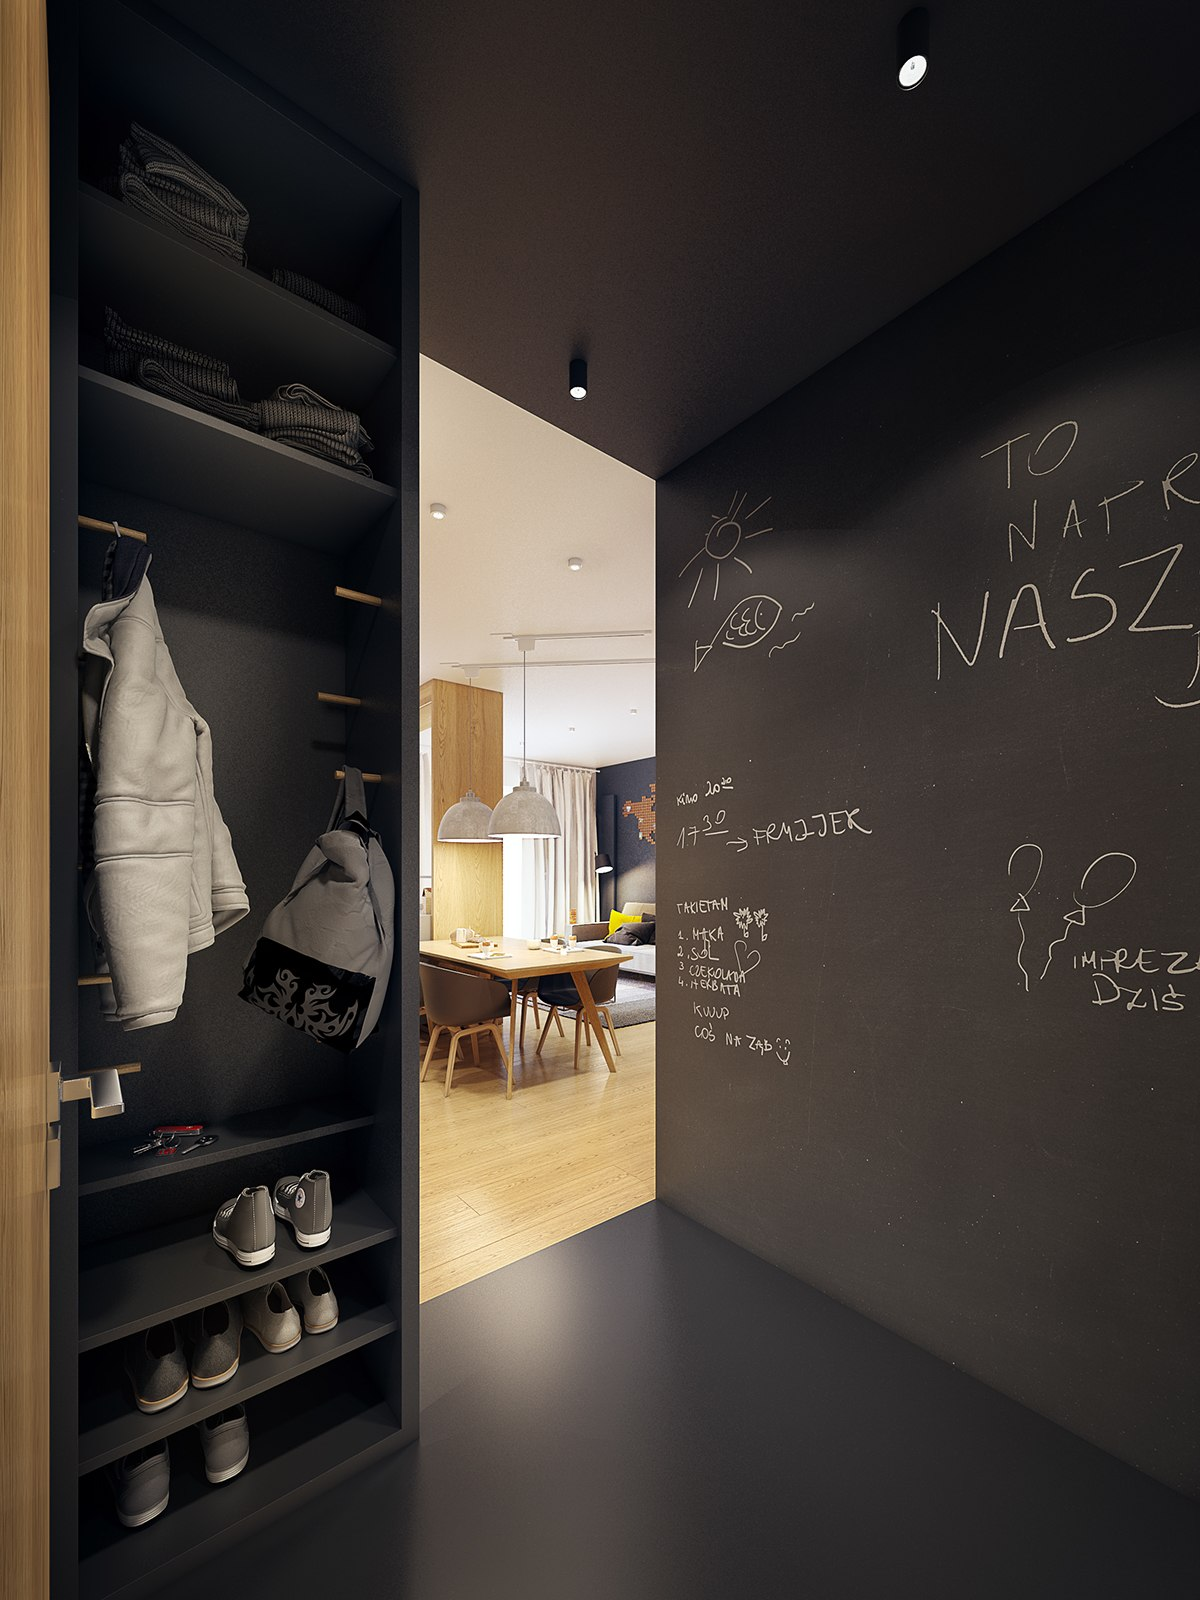 Chalkboard Wall Ideas - A modern scandinavian inspired apartment with ingenius features